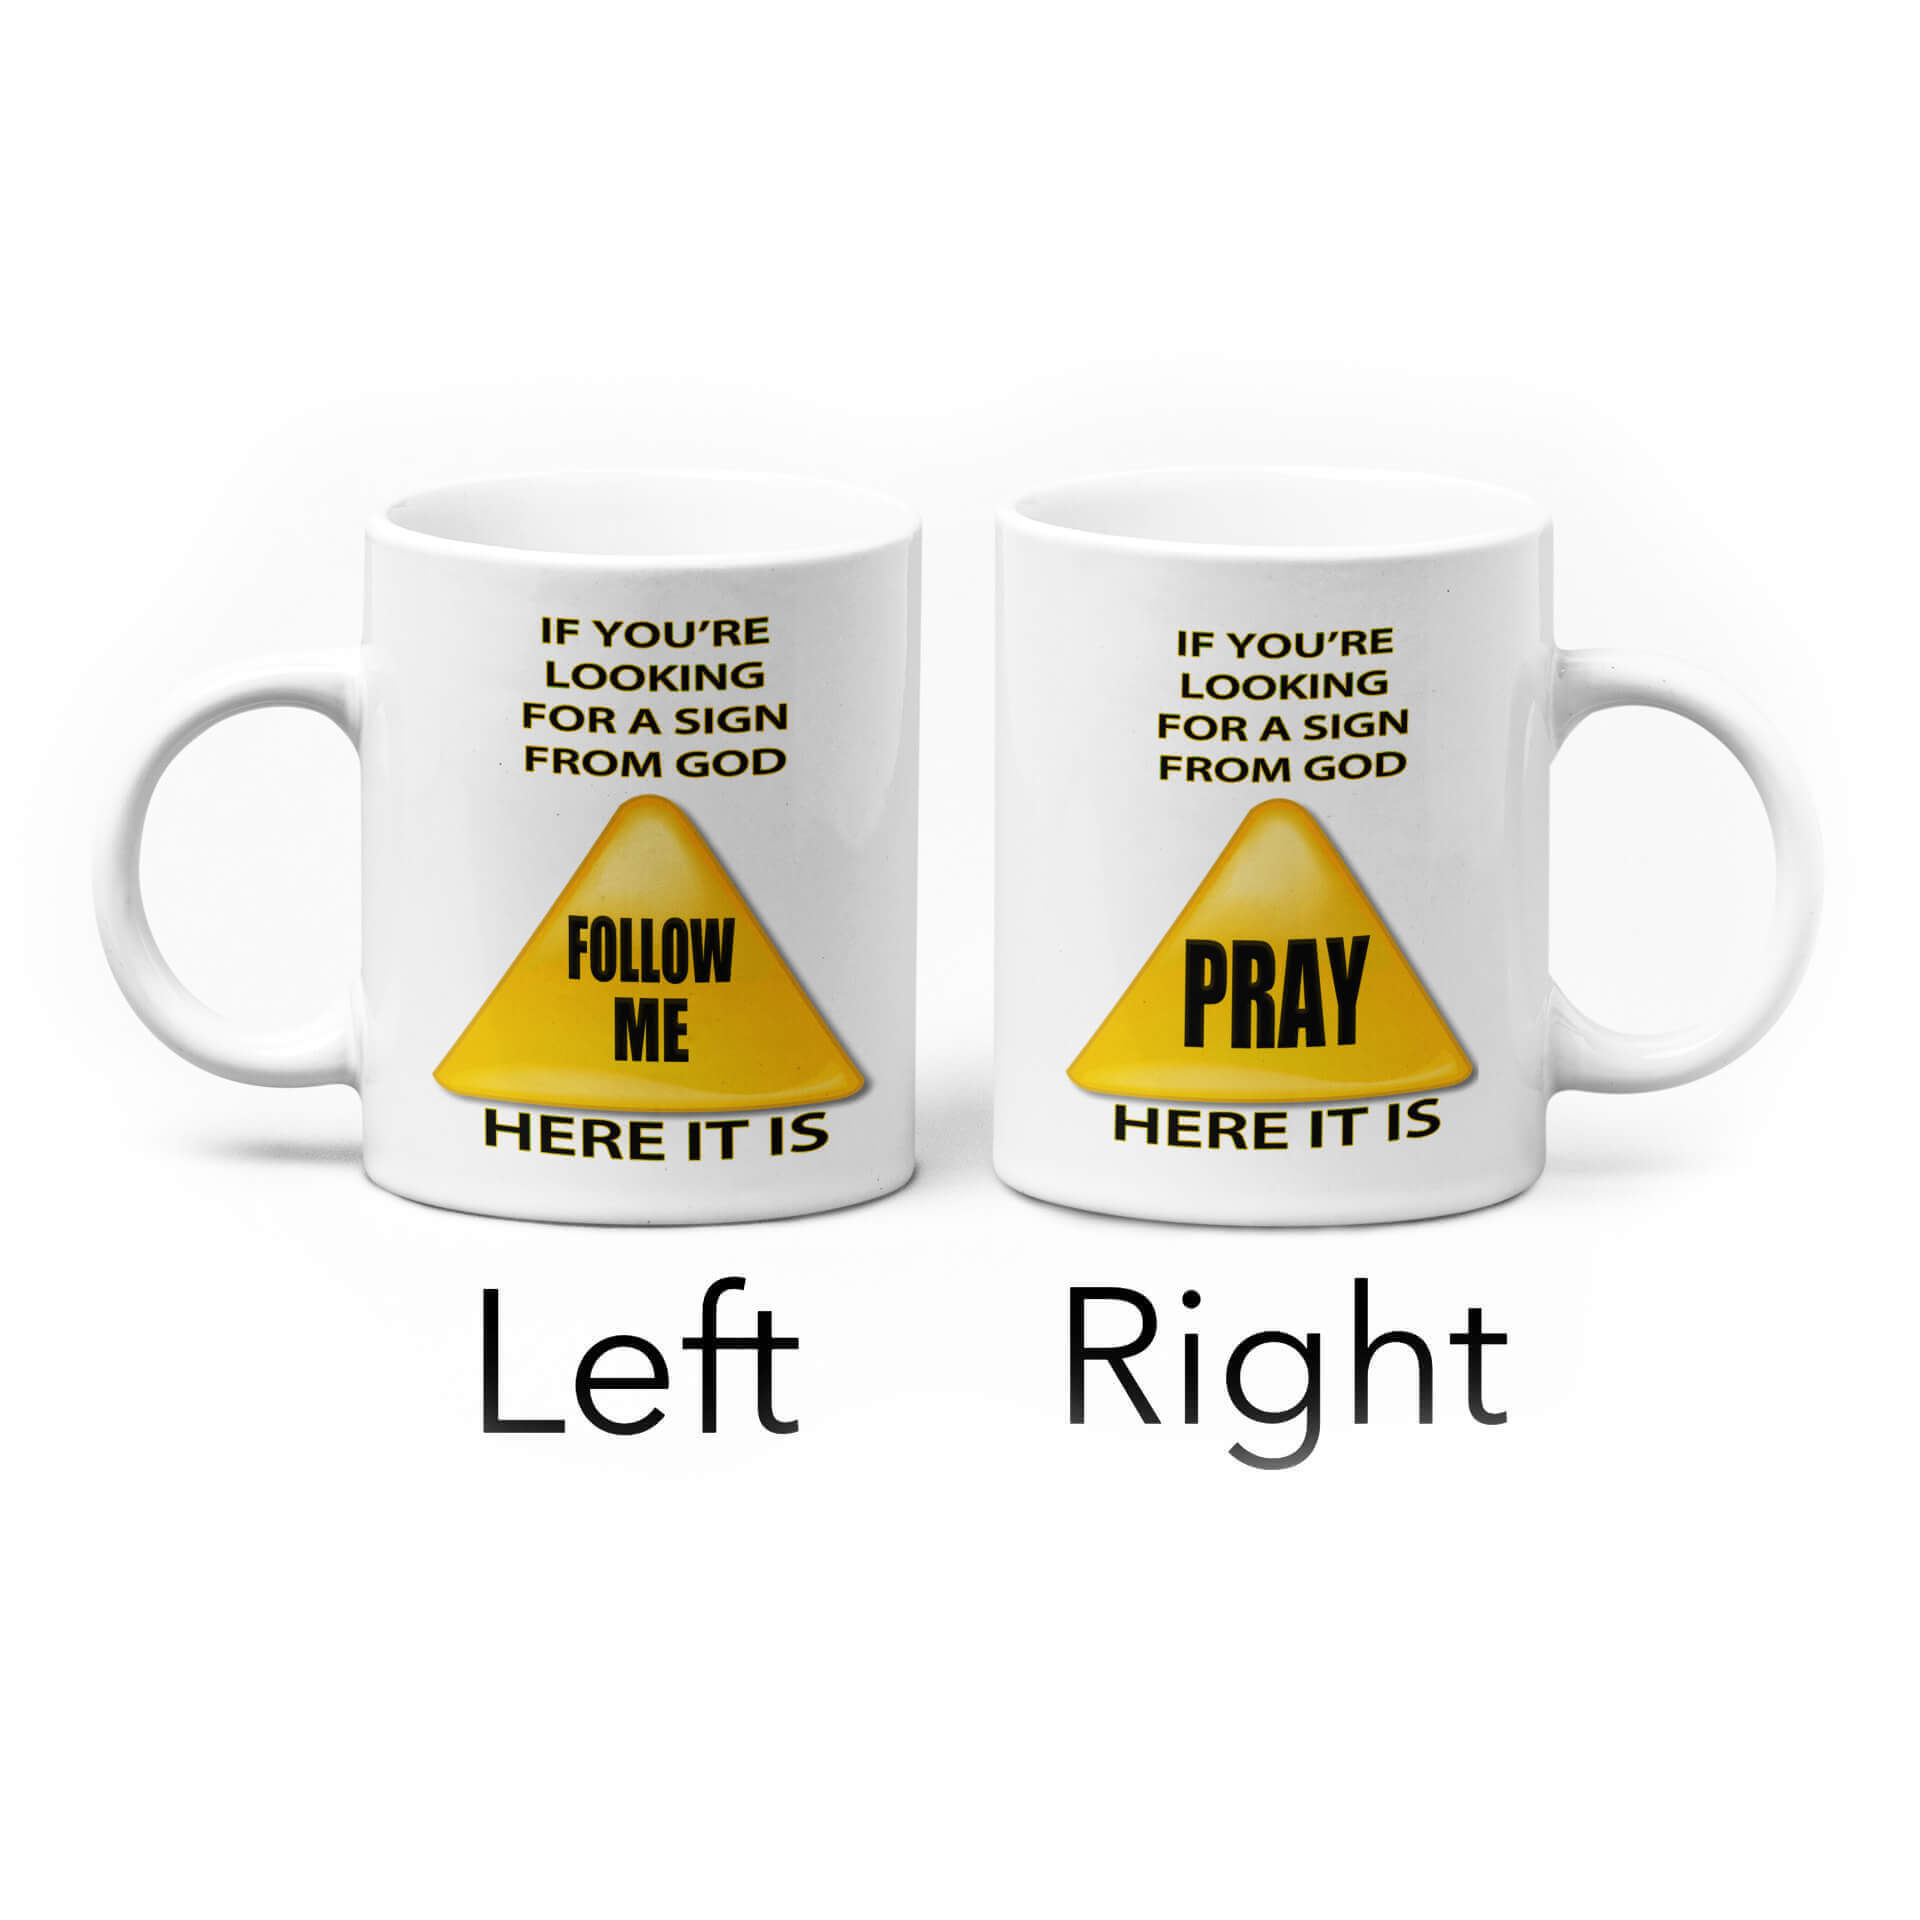 If You're Looking For A Sign From God Mug